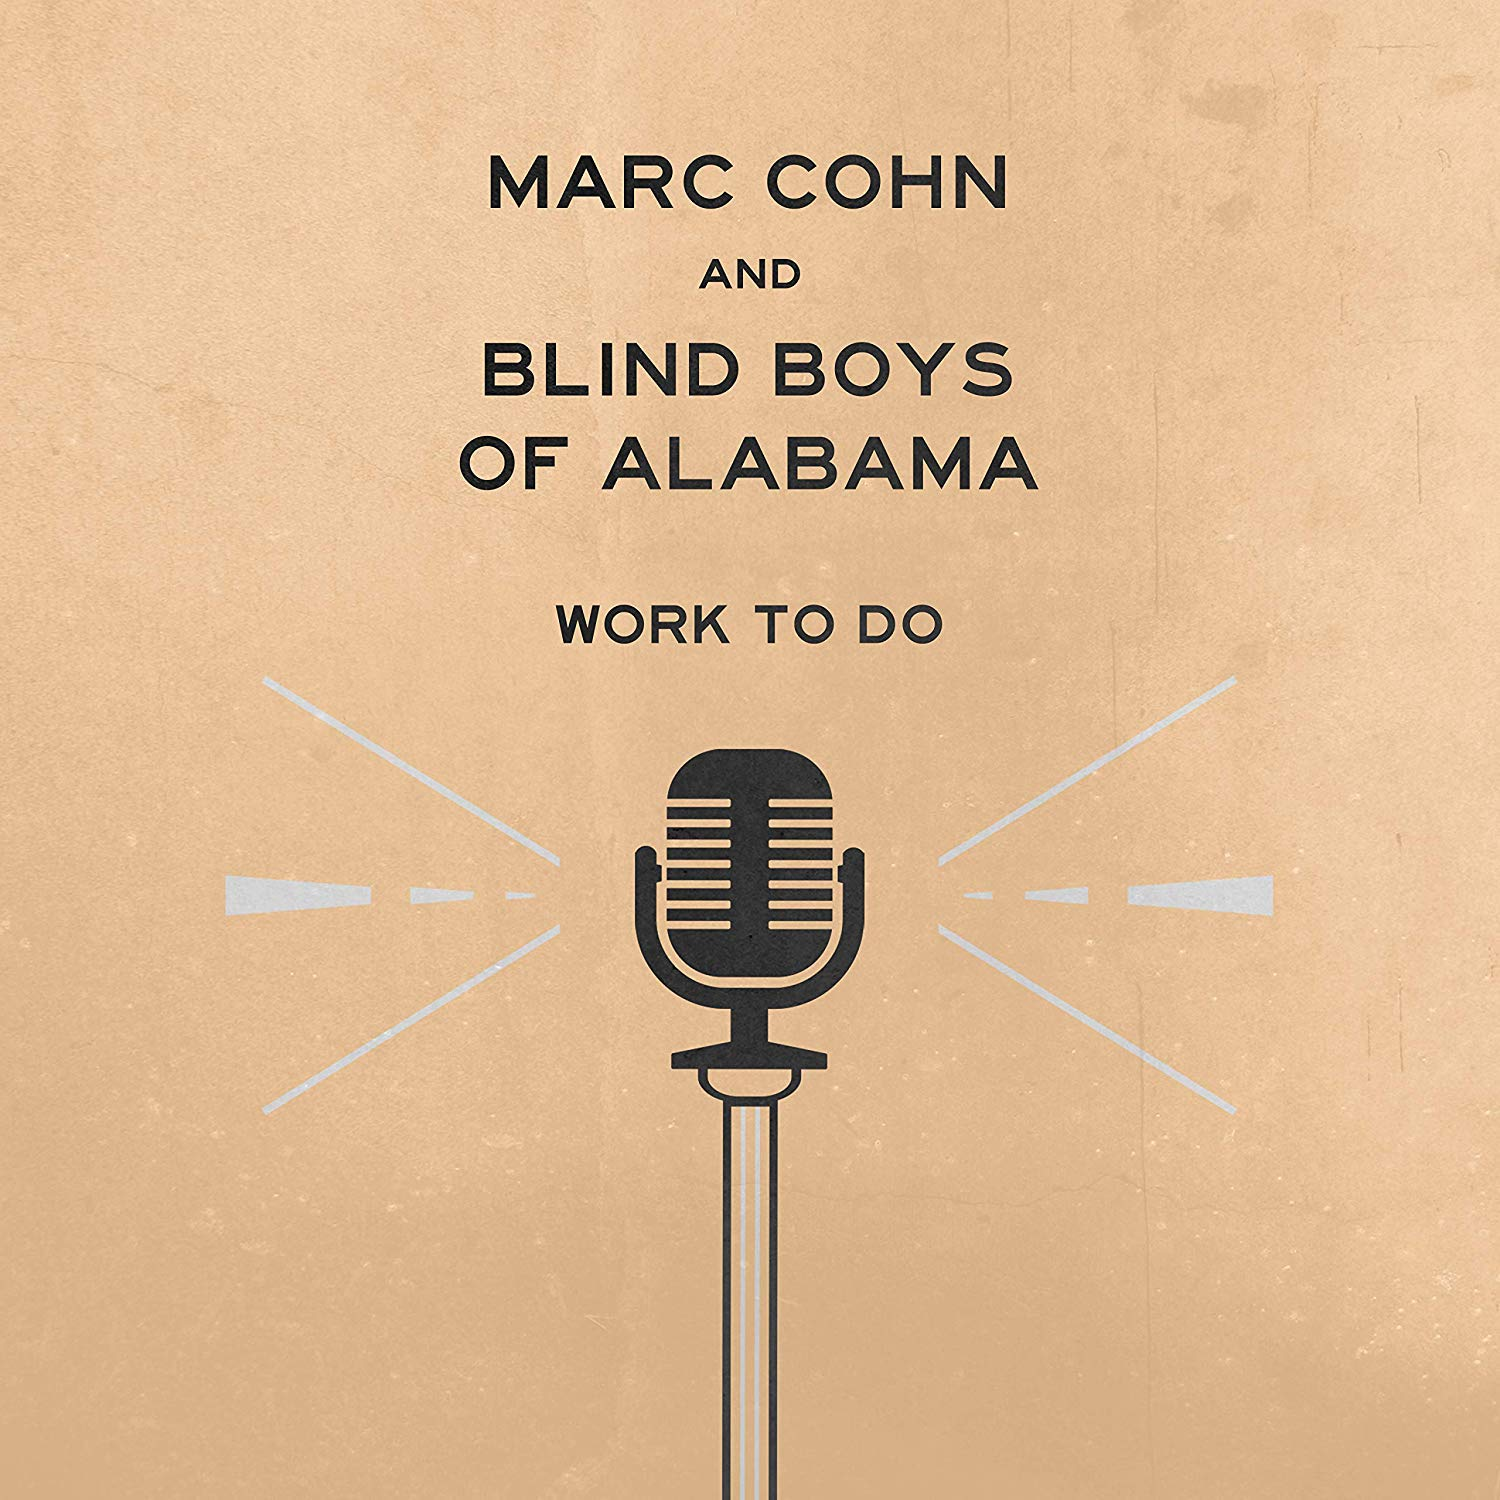 Image result for marc cohn blind boys""